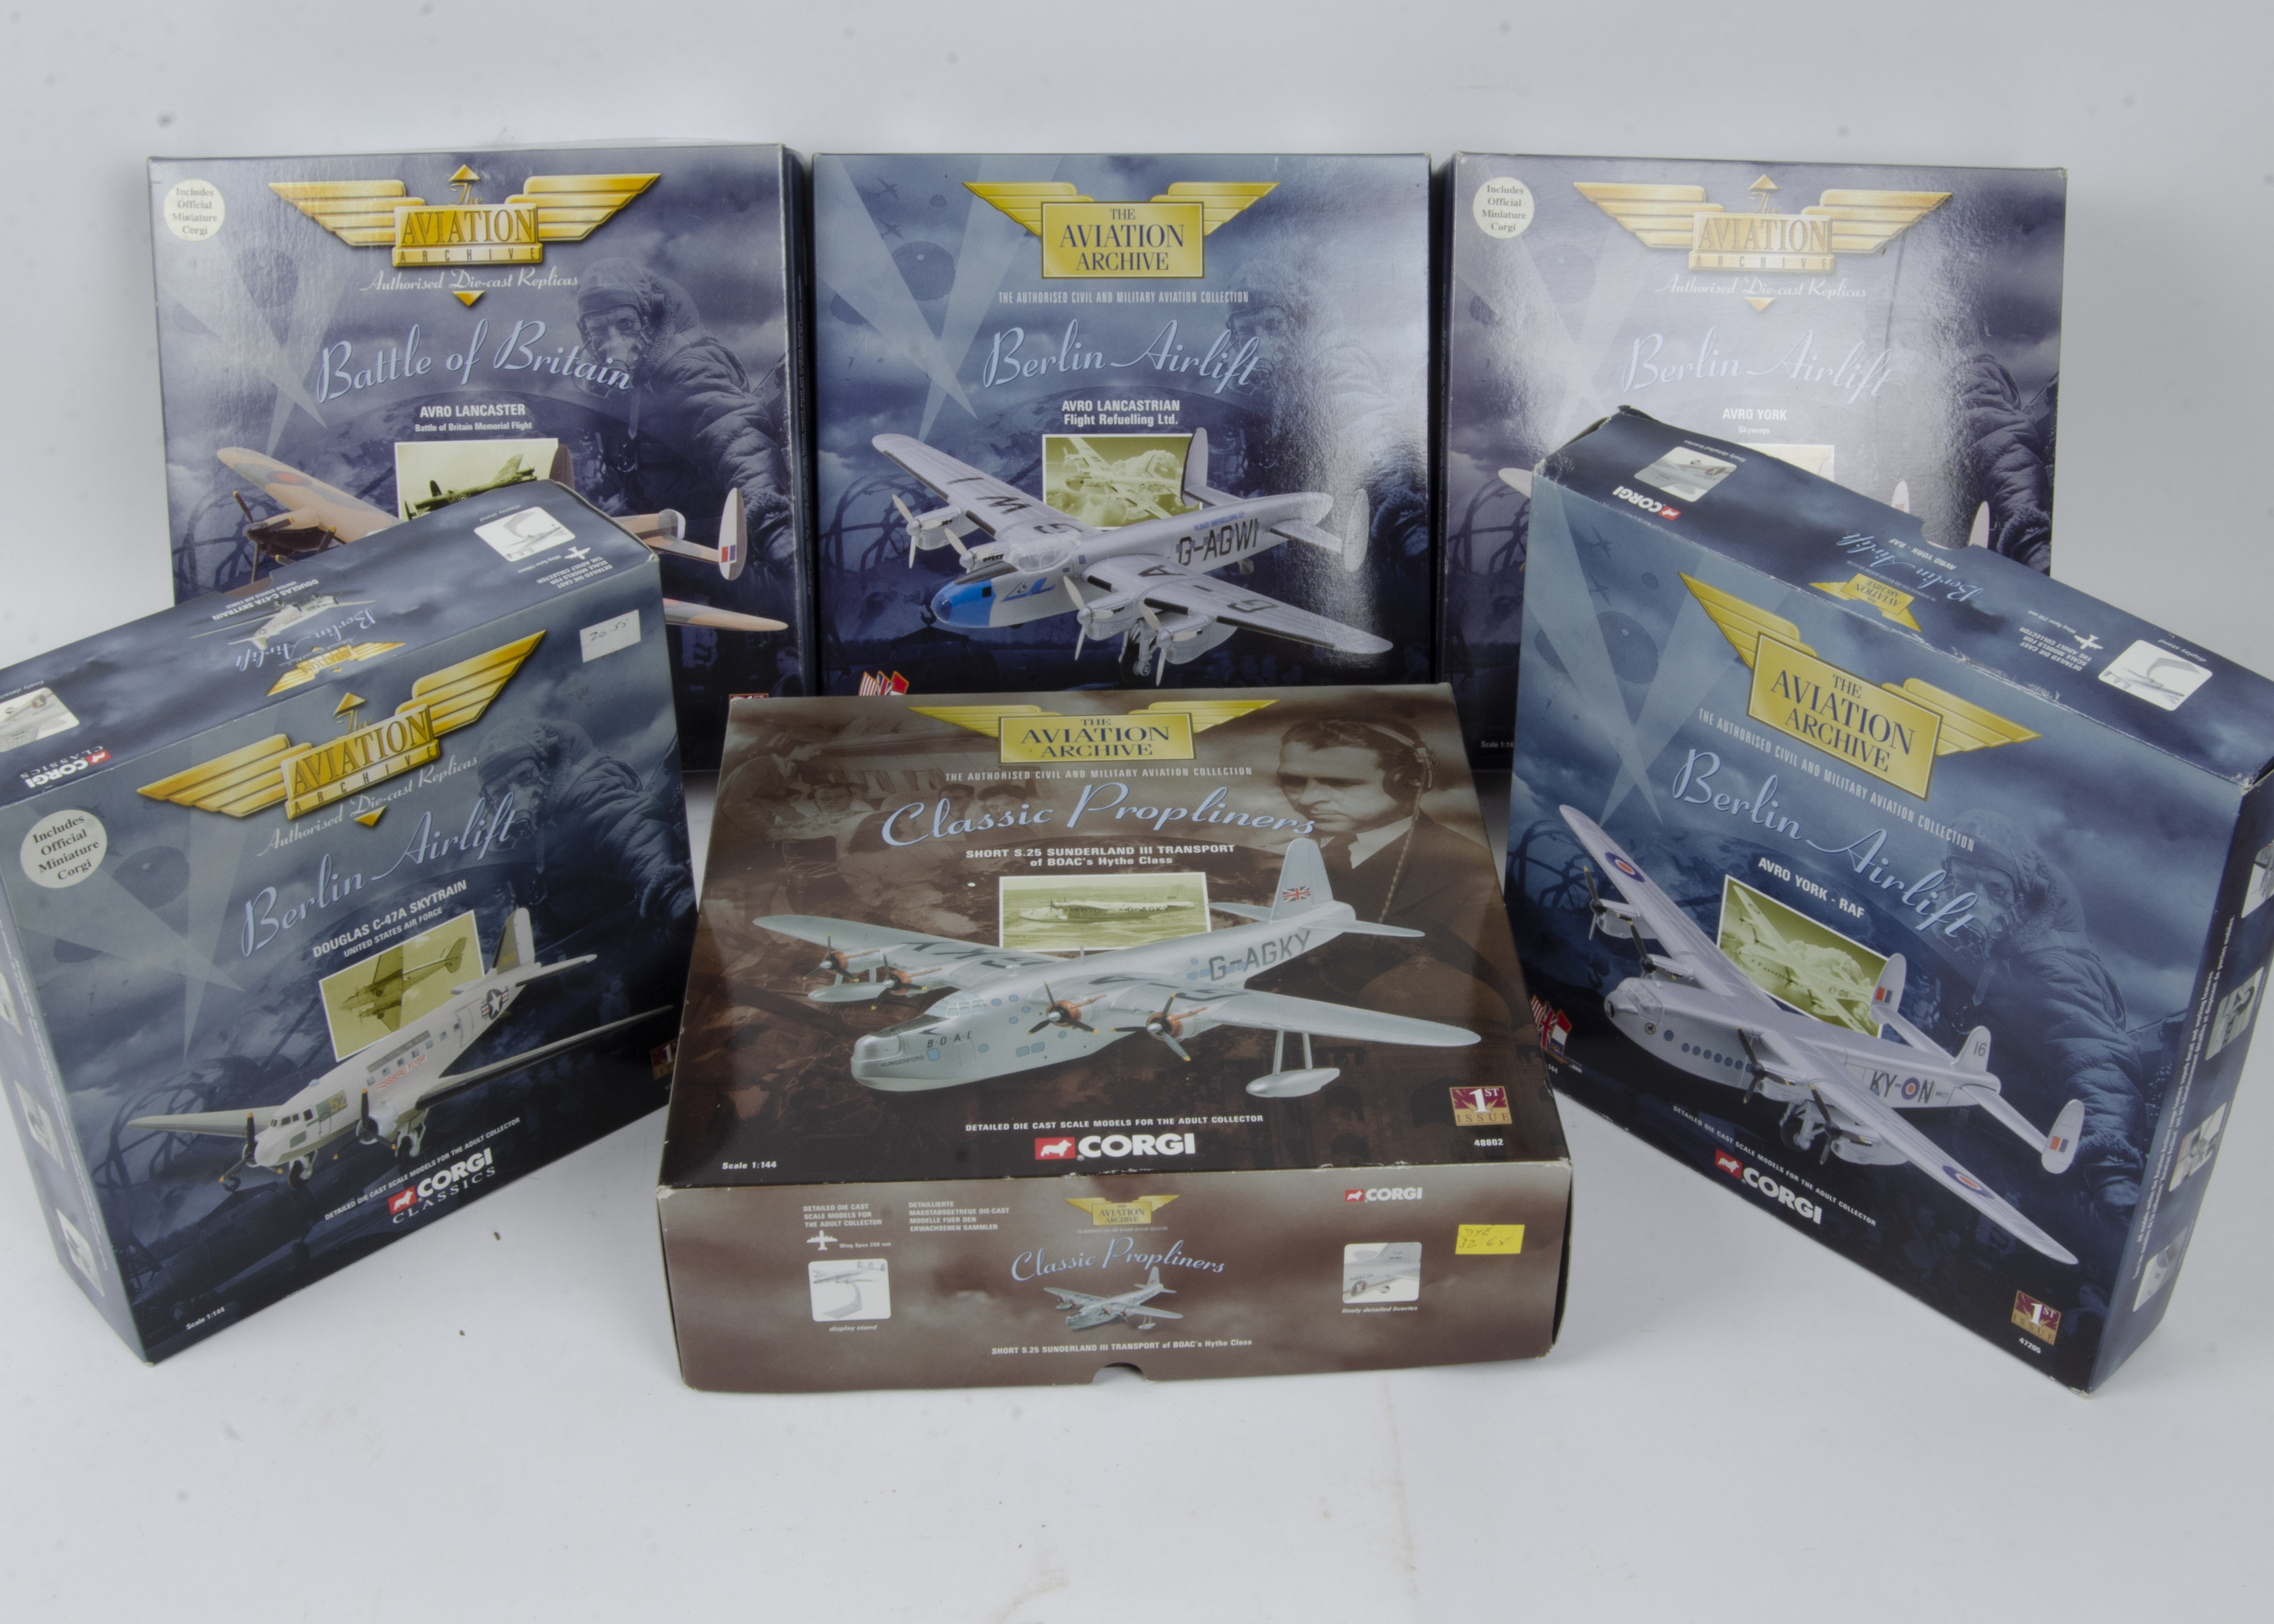 Corgi Aviation Archive , a boxed group of ten models some limited edition comprising 1:72 scale - Image 2 of 2